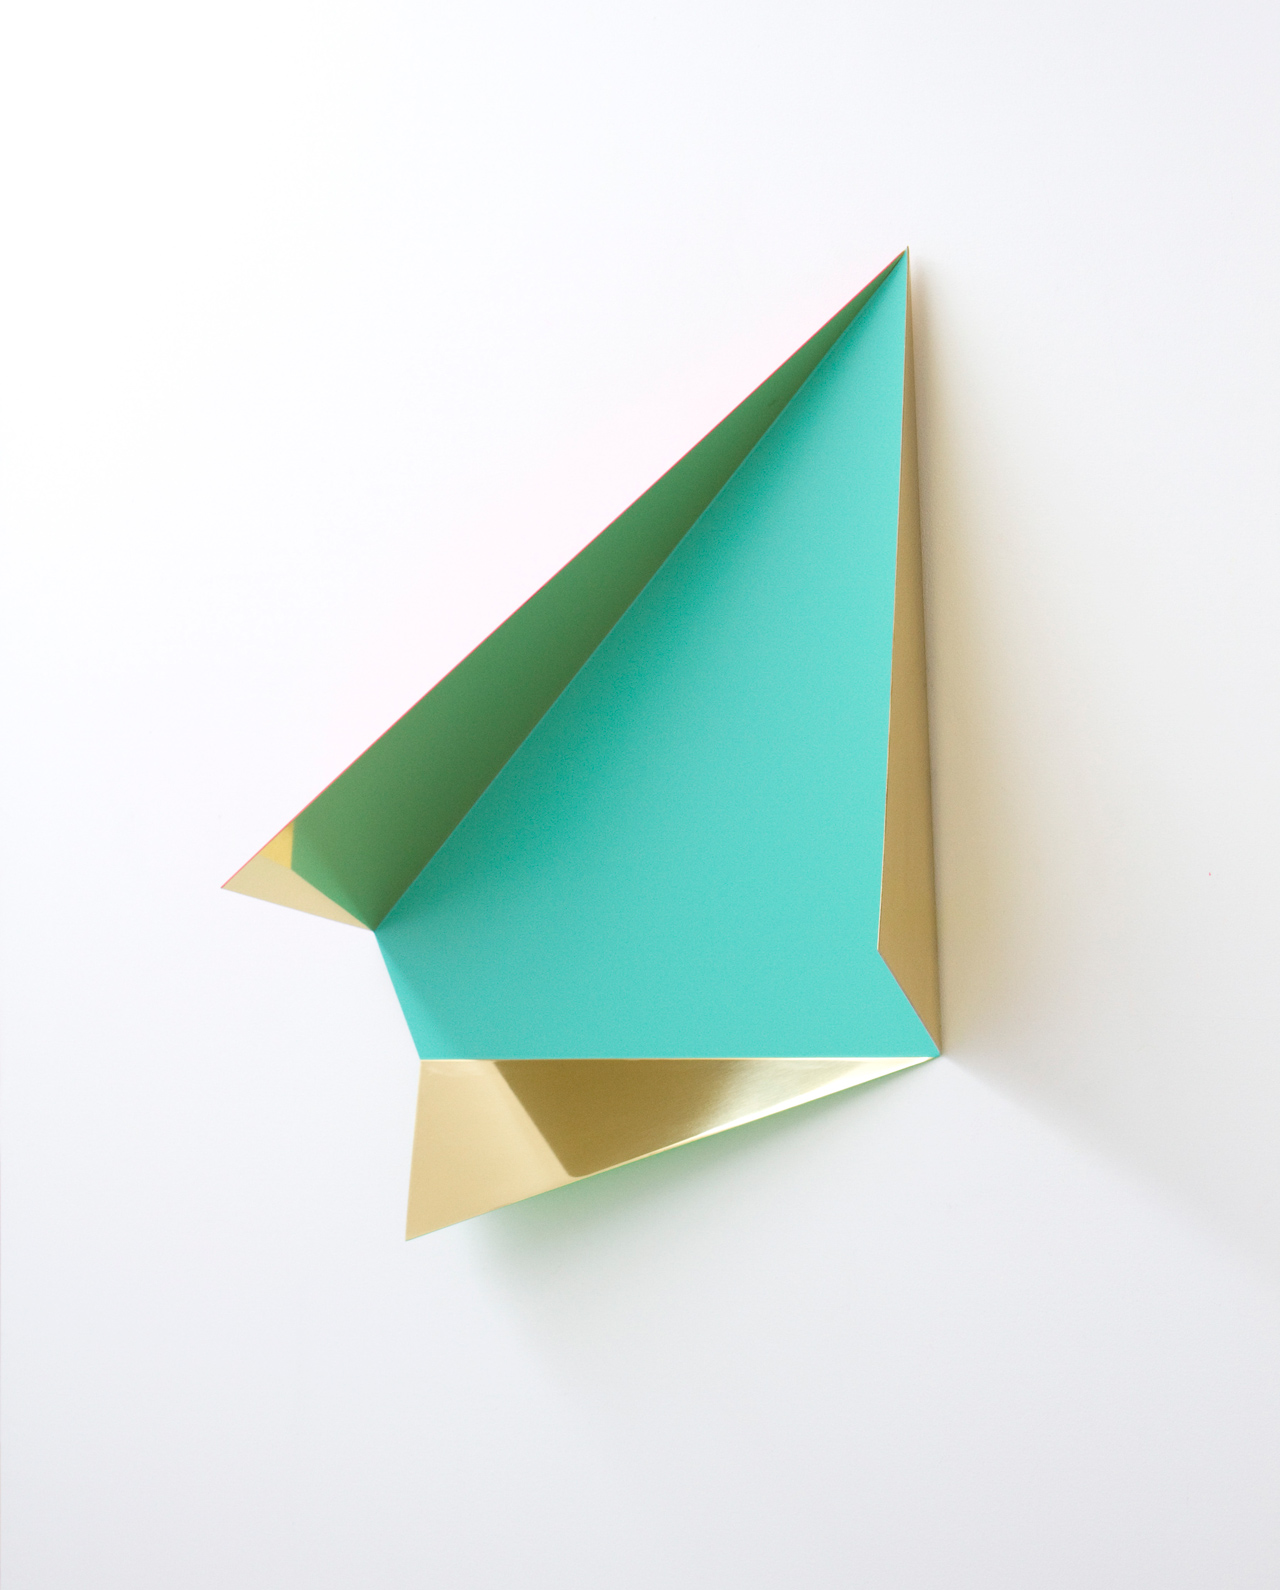 Rana Begum, 'No. 356', 2012, Paint on mirror finish brass, 56 x 62 x 20 cm. Image courtesy the artist and The Third Line.